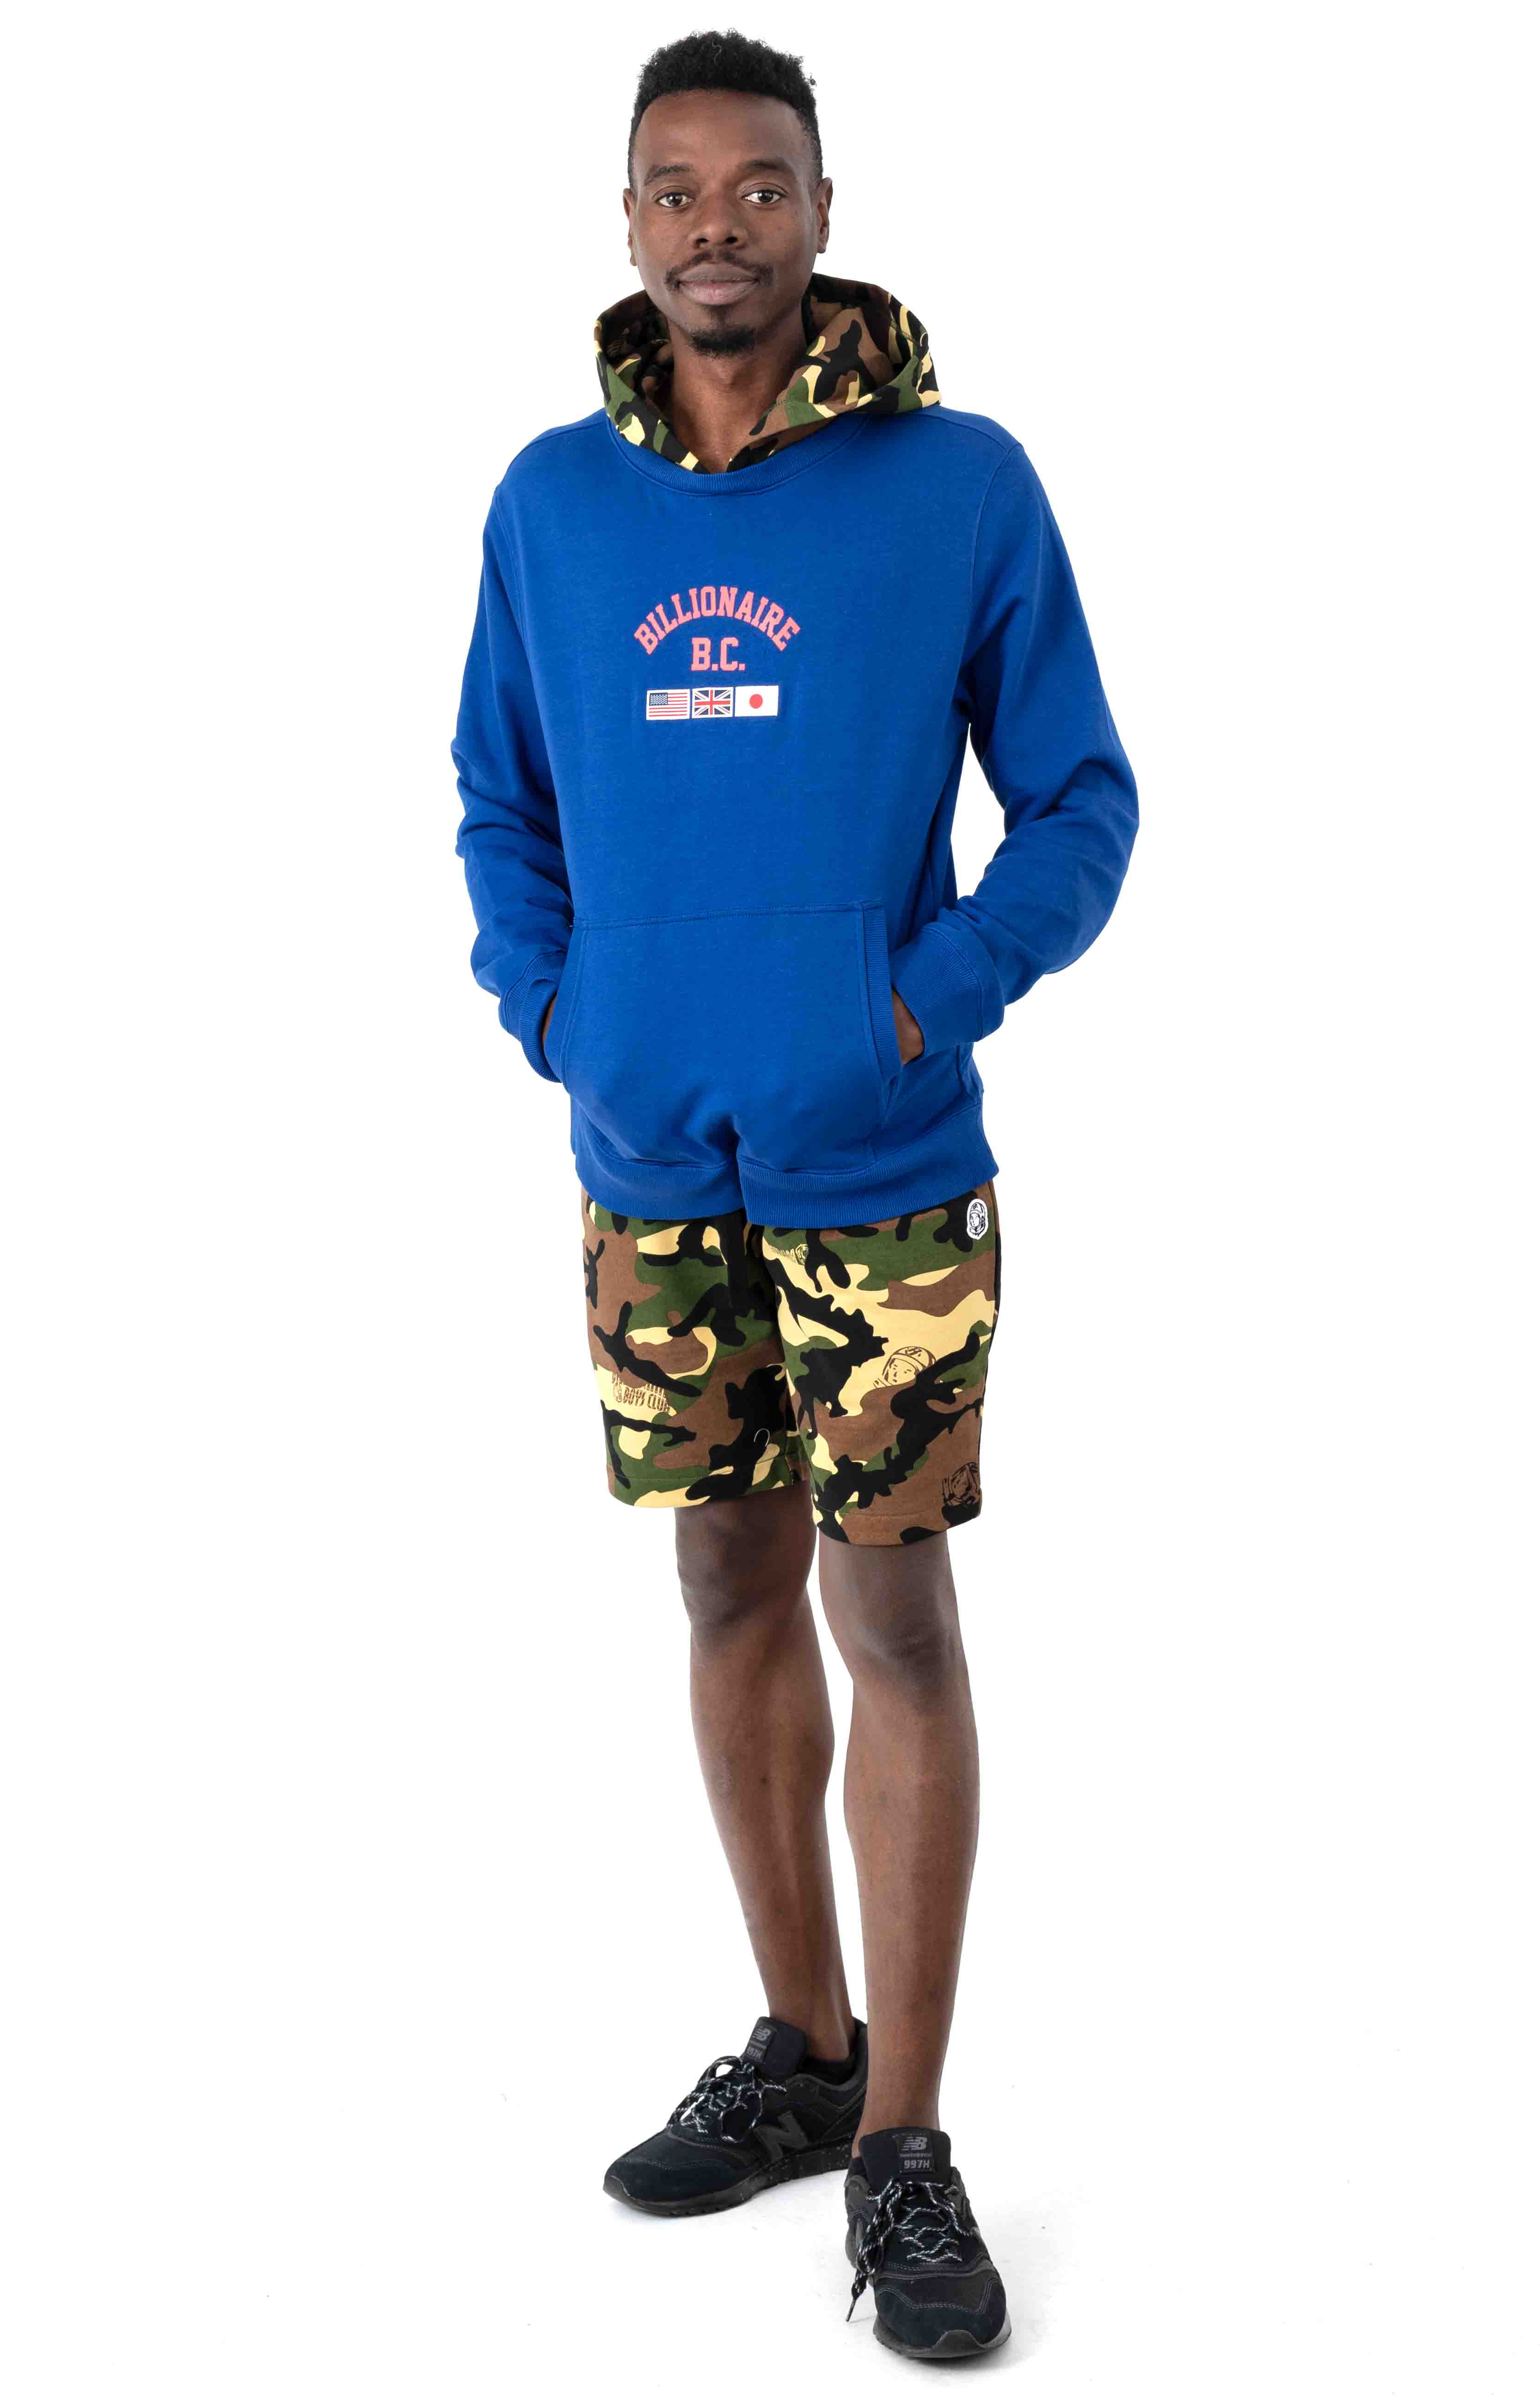 BB Tour Pullover Hoodie - Surf The Web 4